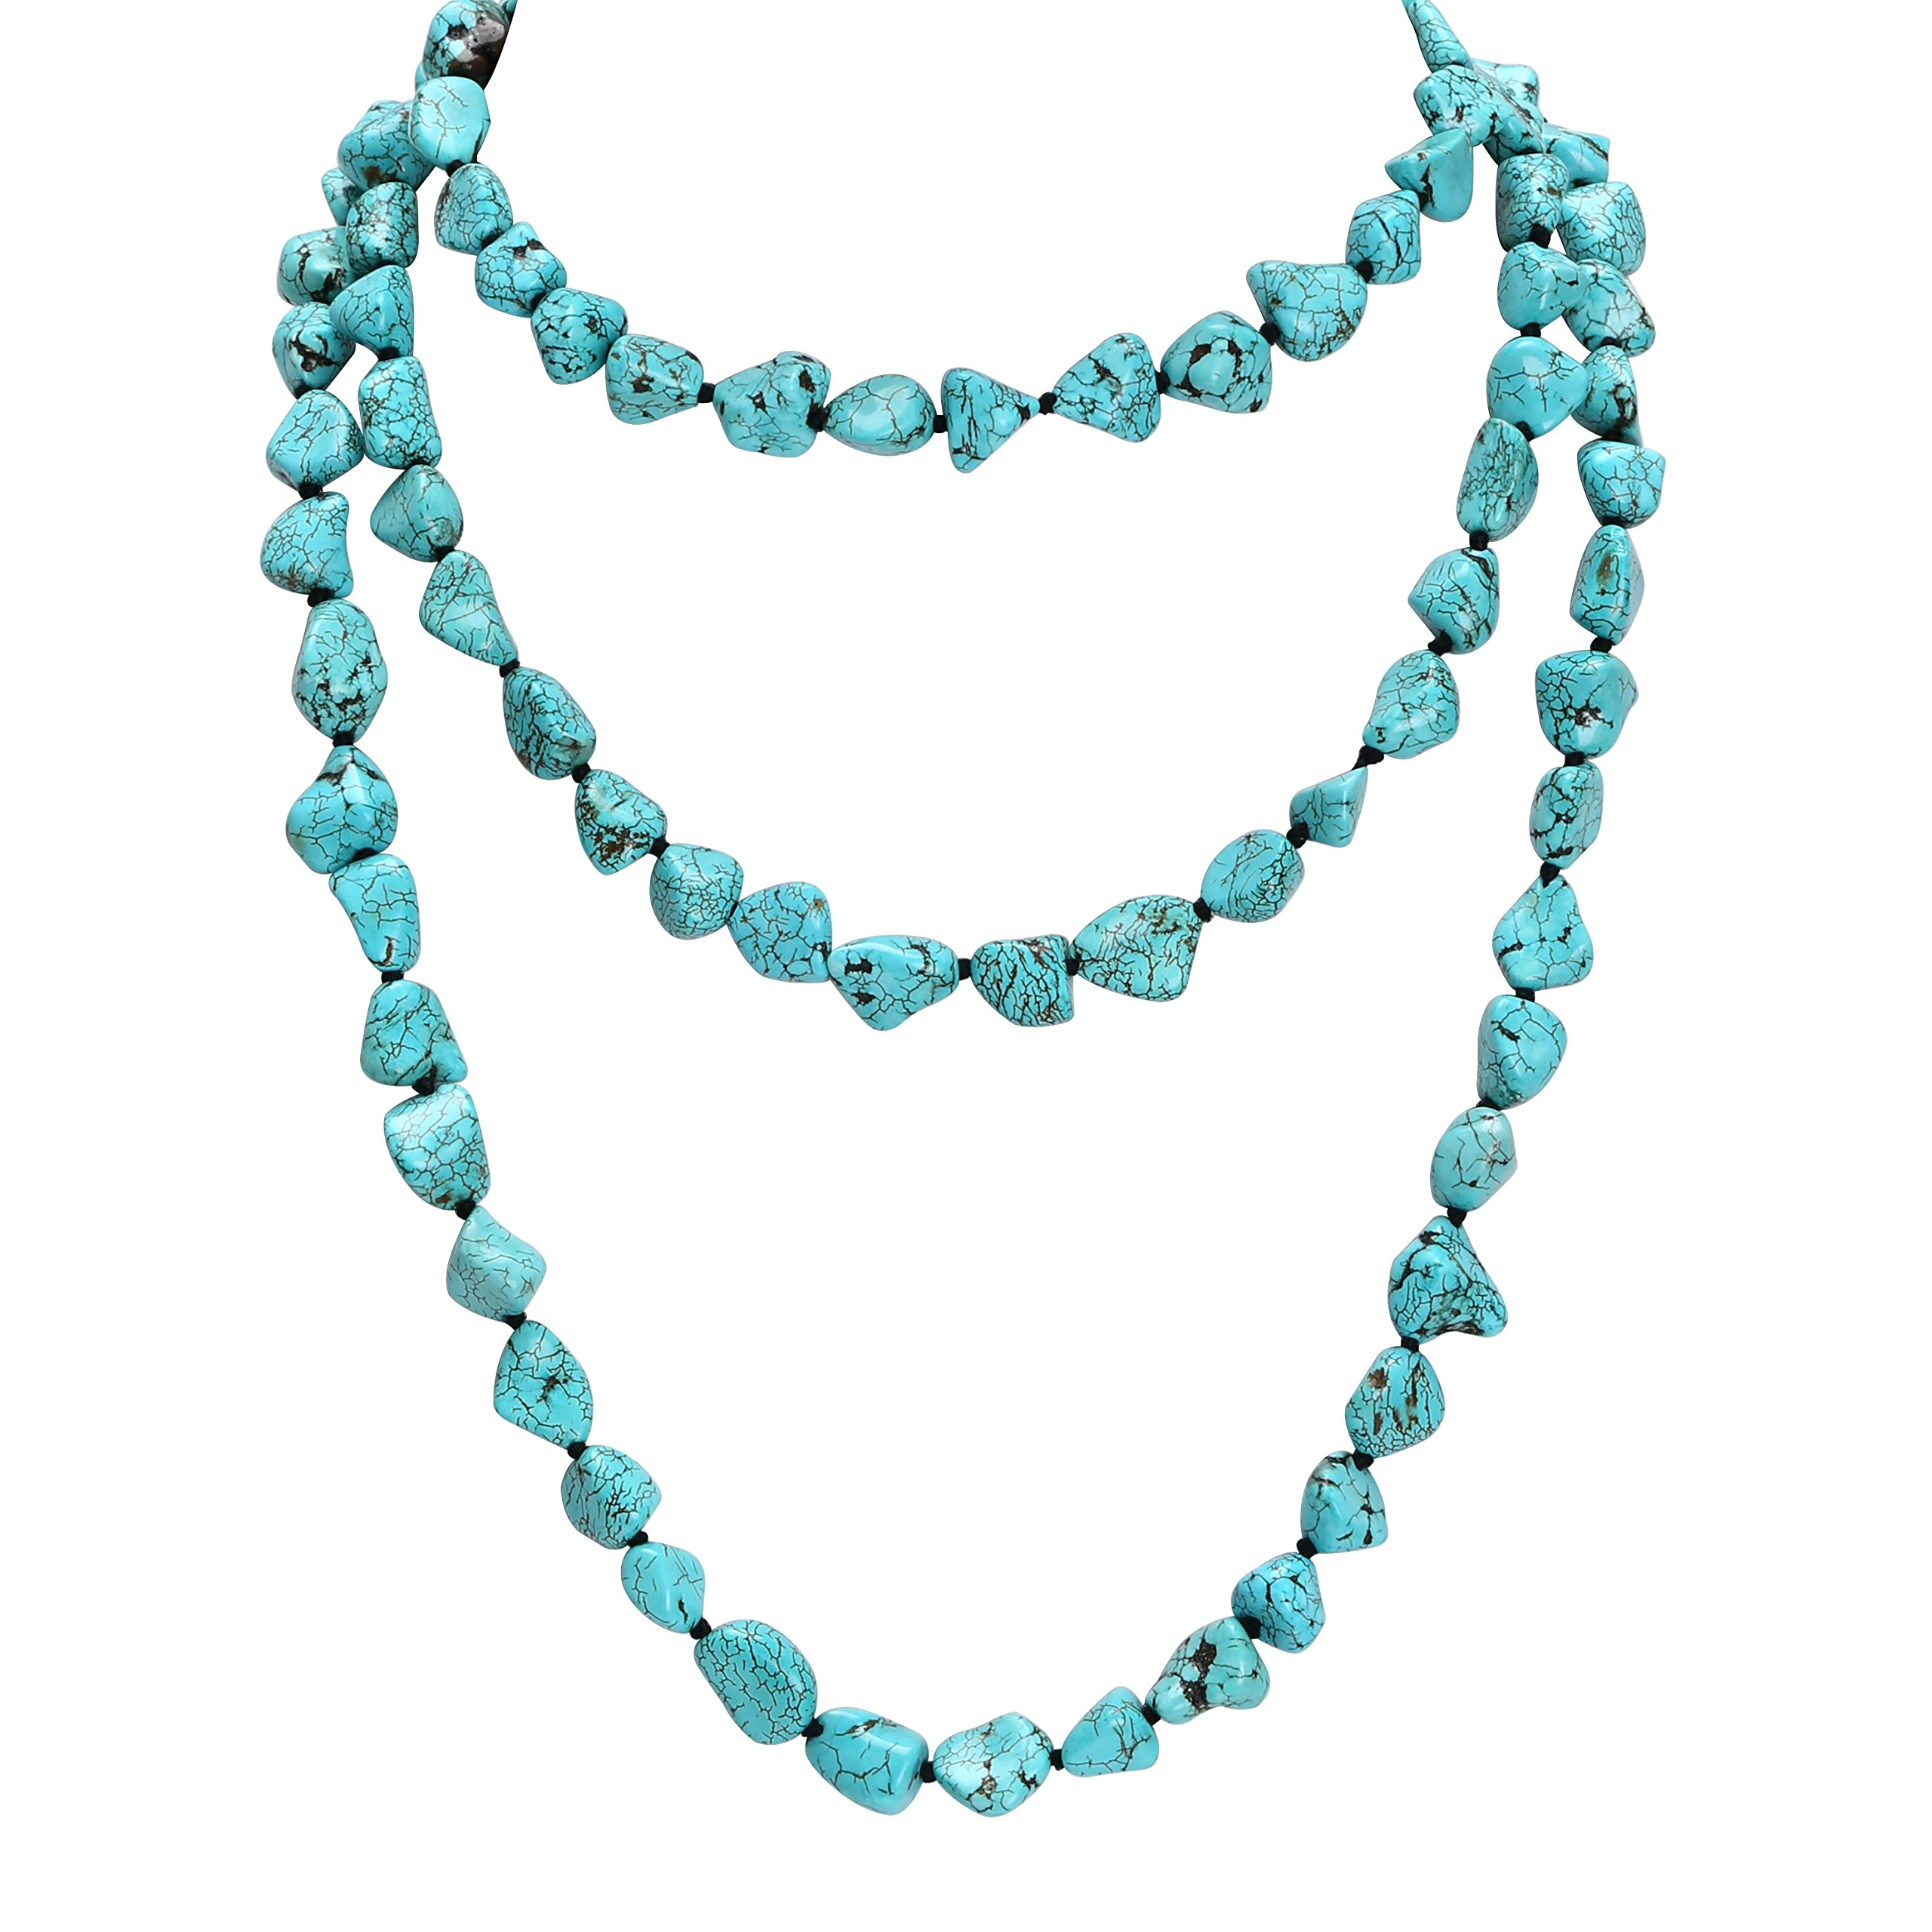 POTESSA Turquoise Beads Endless Necklace Long Knotted Stone Multi-Strand Layer Necklaces Handmade Jewelry 59'' by POTESSA